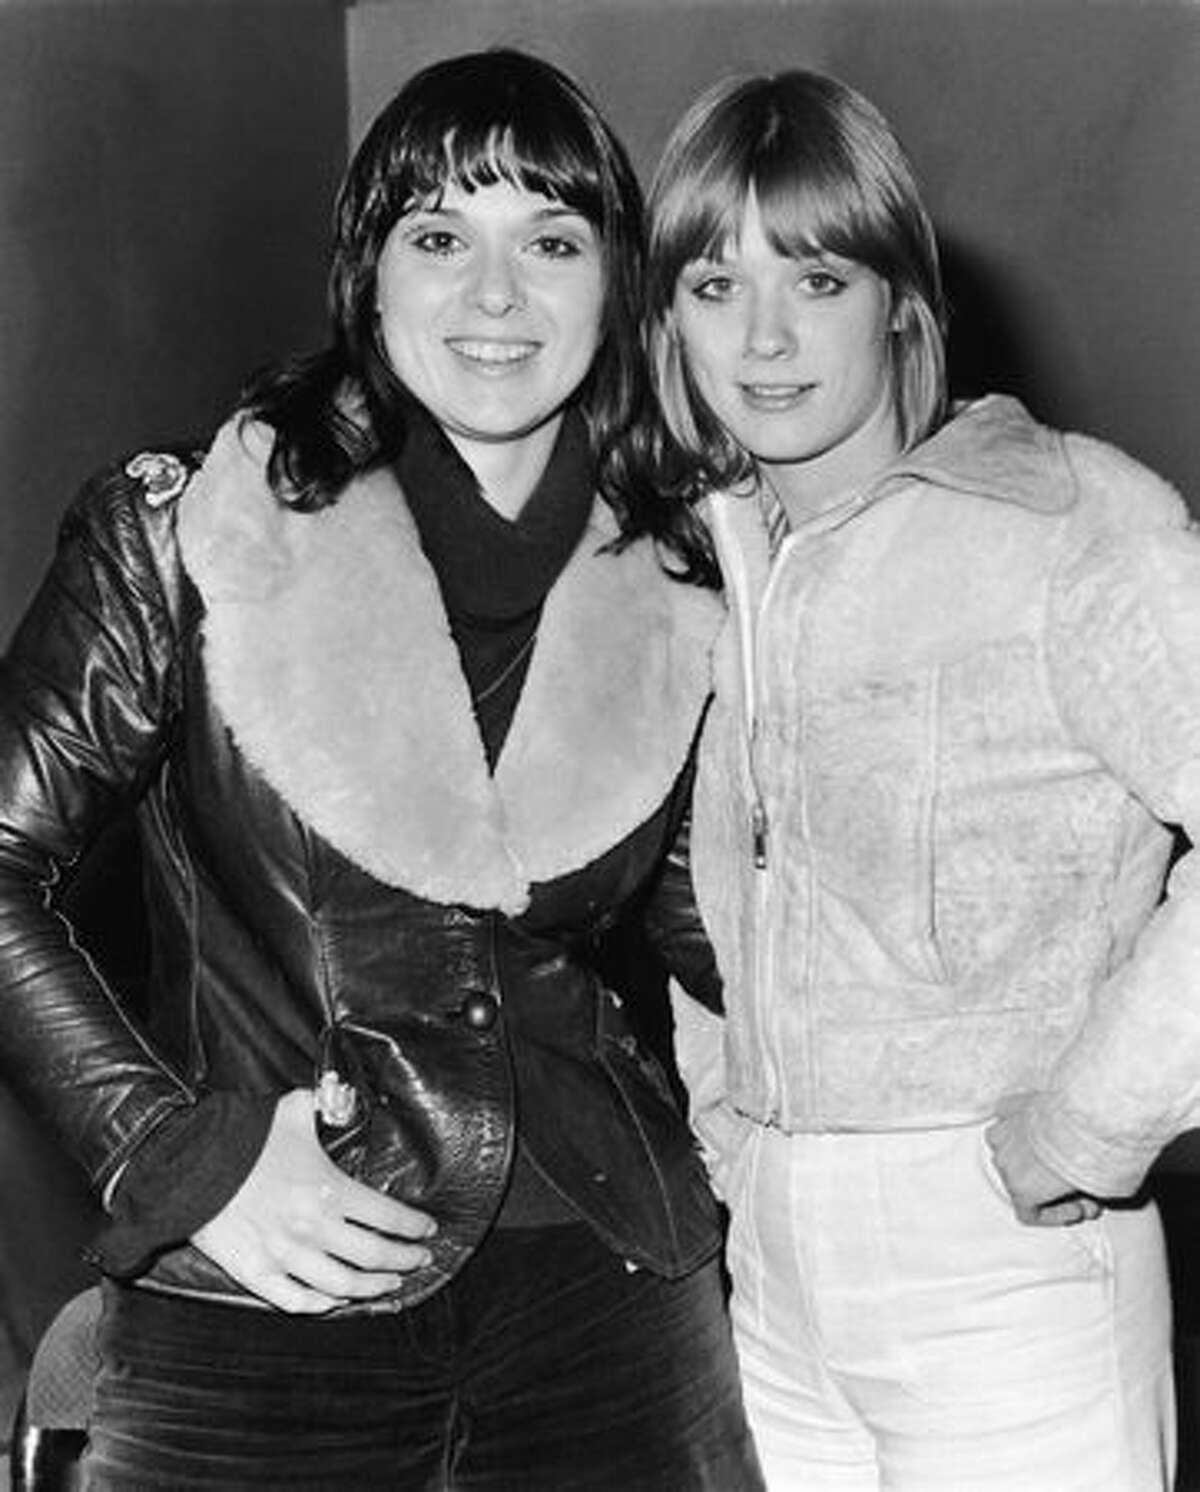 Portrait of sisters Ann and Nancy Wilson of the rock group Heart on tour in Europe, 1976.